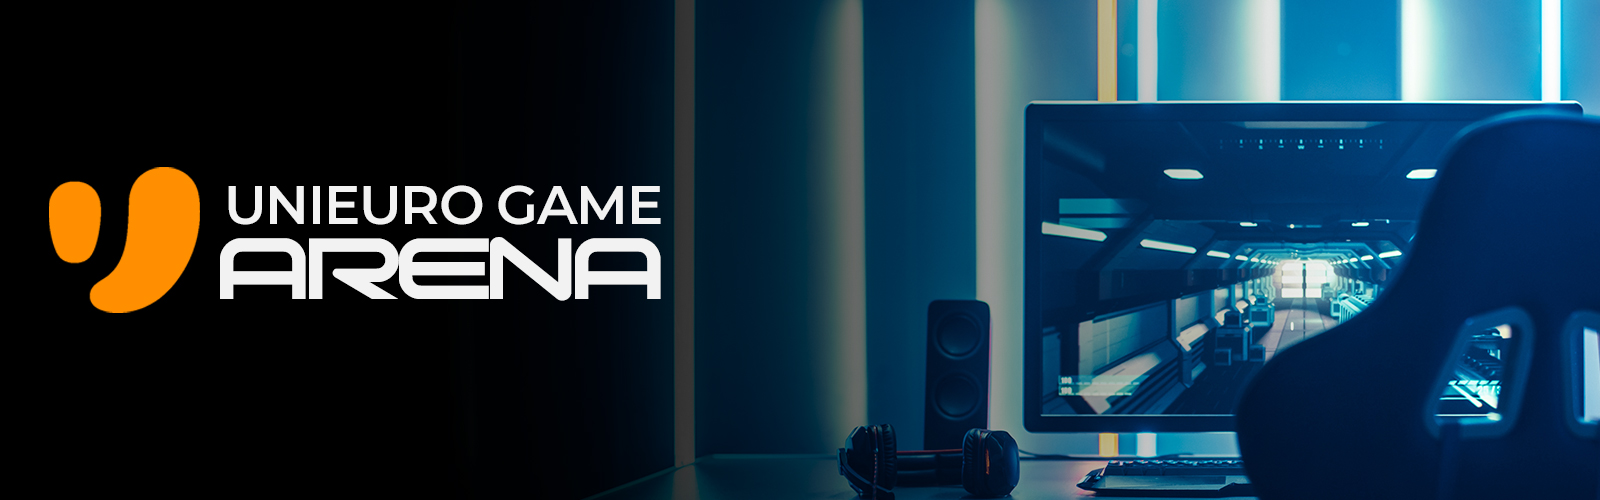 Game Arena - Mondo Gaming Unieuro